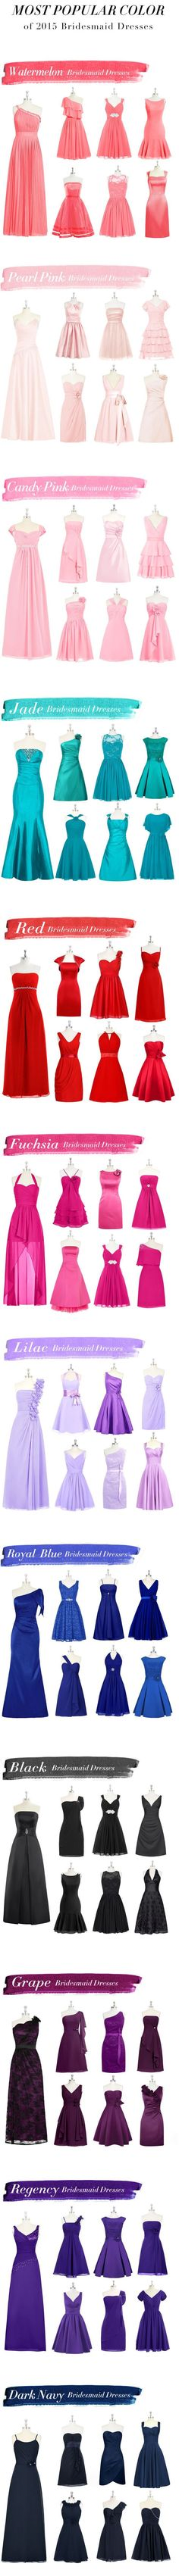 Most Popular Bridesmaids Dress Colors 2015 wedding weddings bridesmaids #wedding-pinned by wedding specialists http://dazzlemeelegant.com